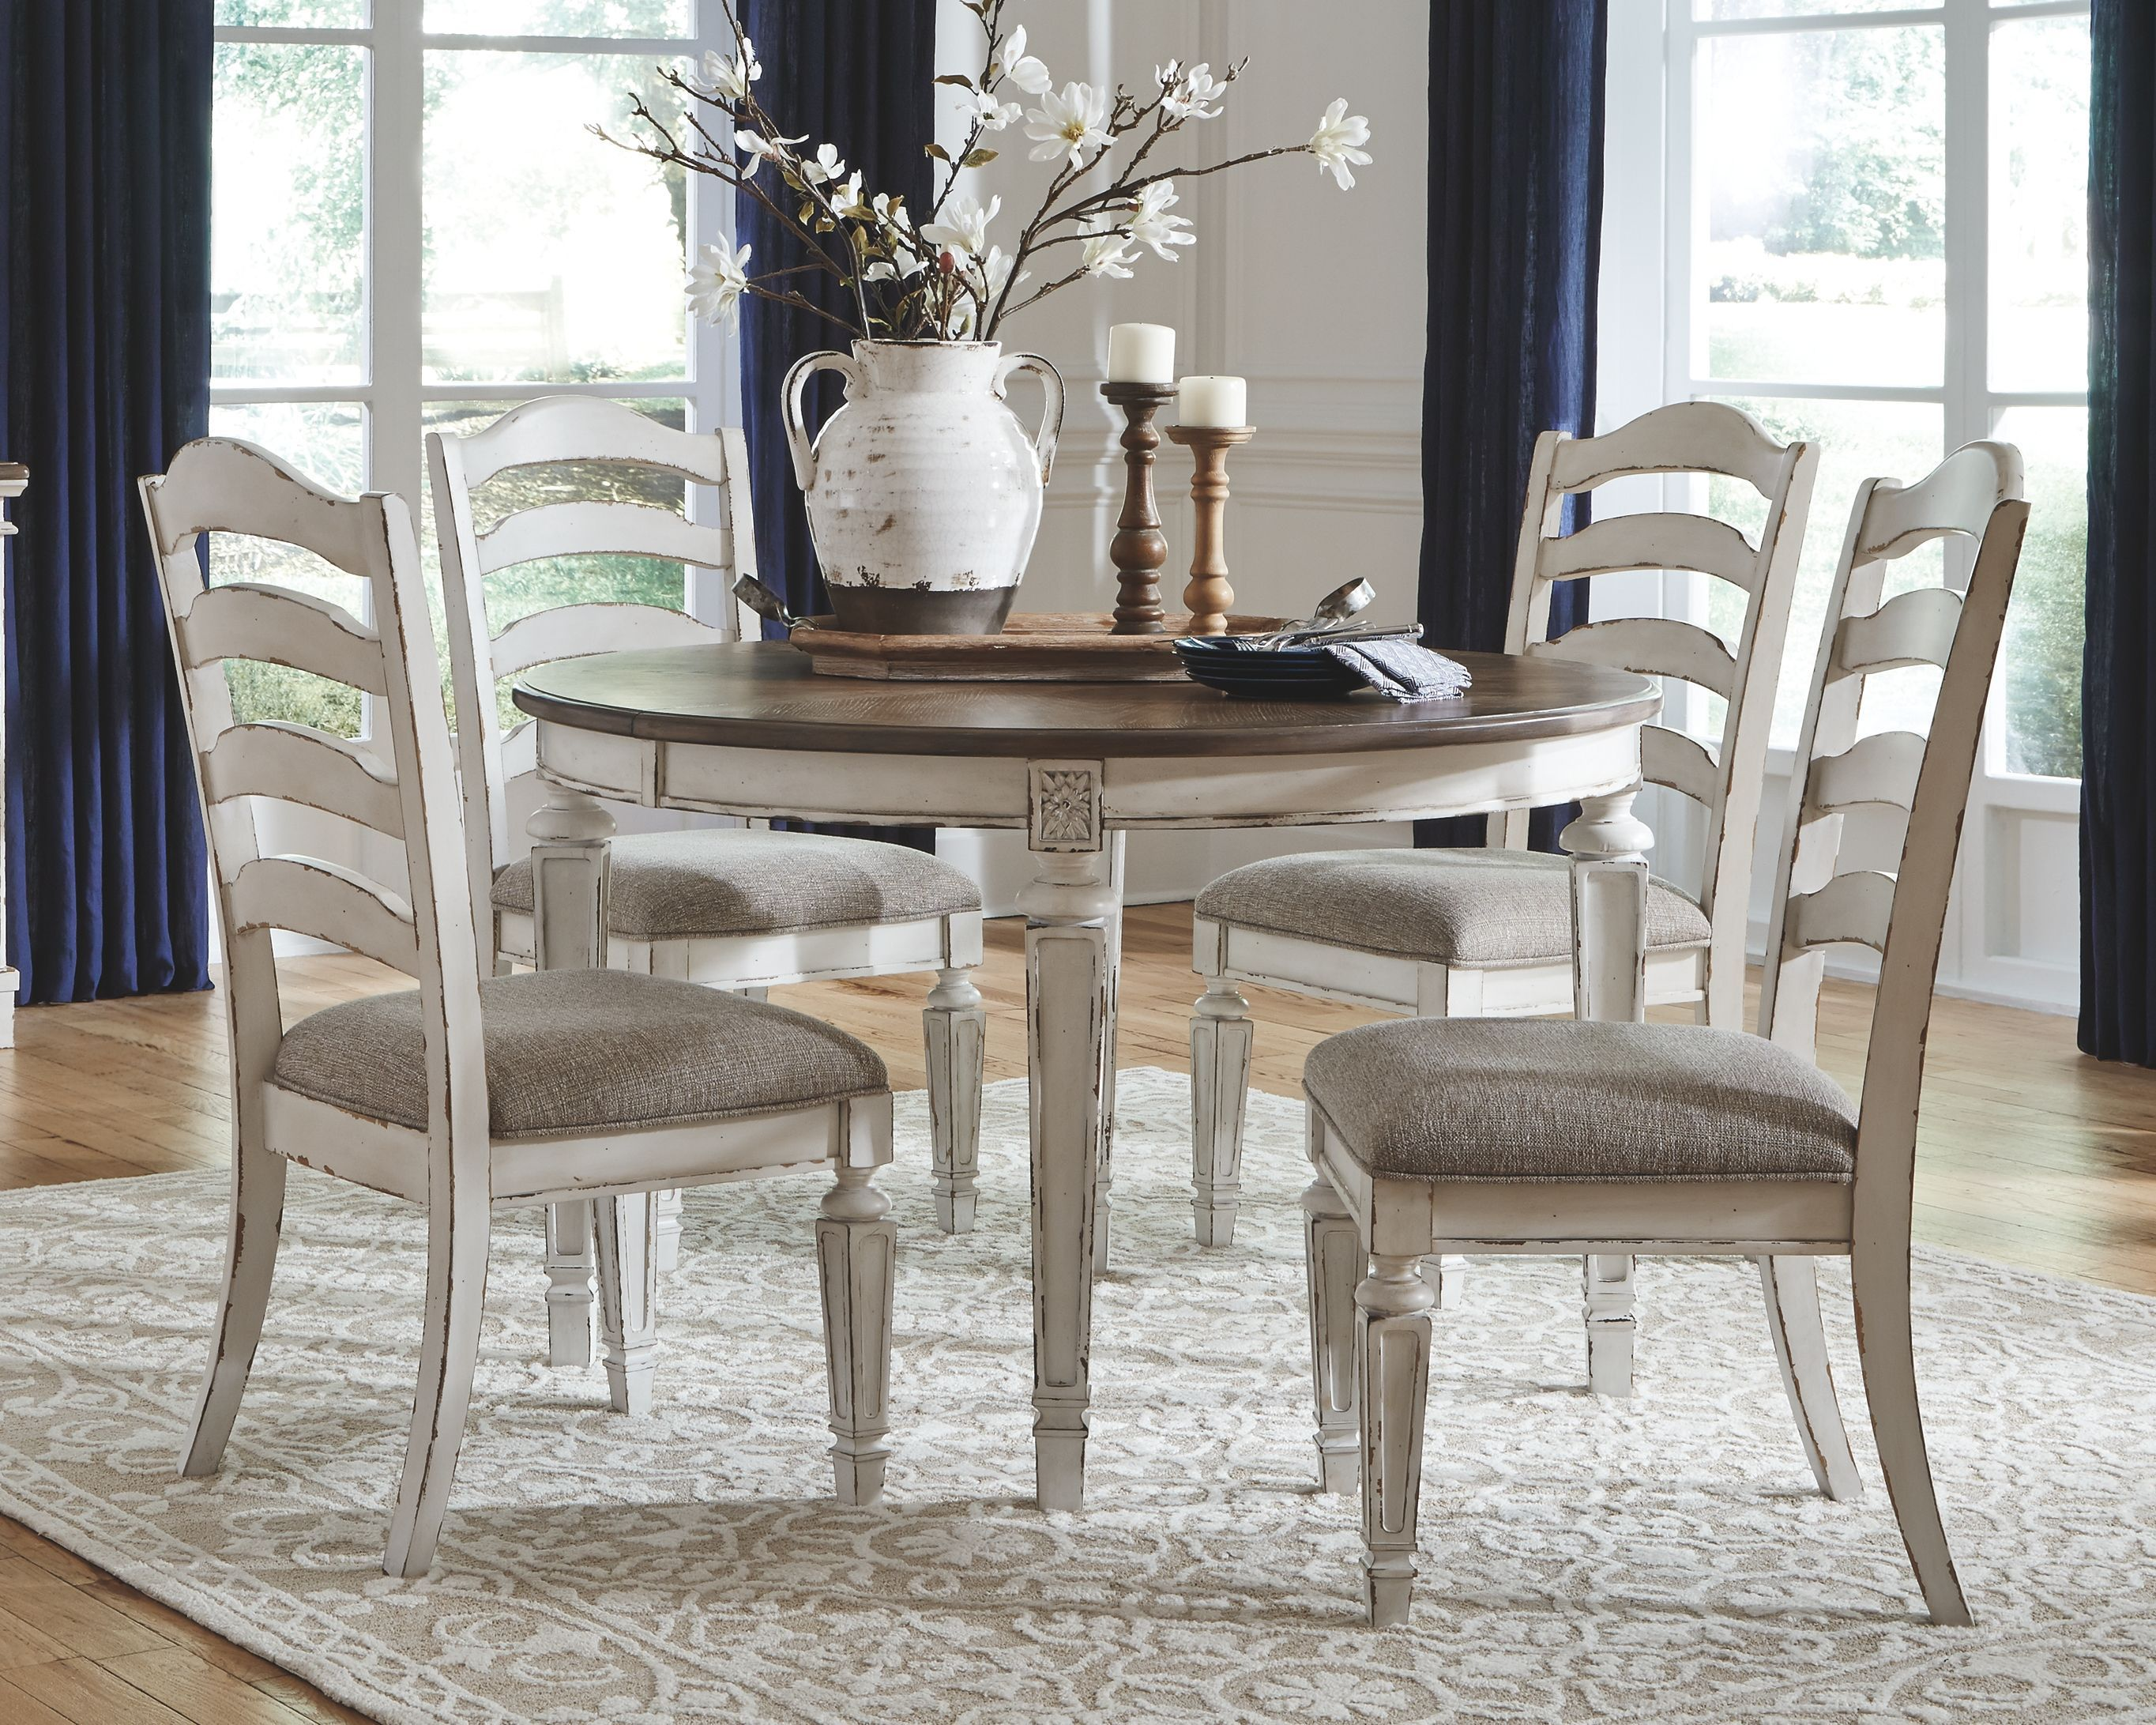 18++ Realyn chipped white dining set Inspiration